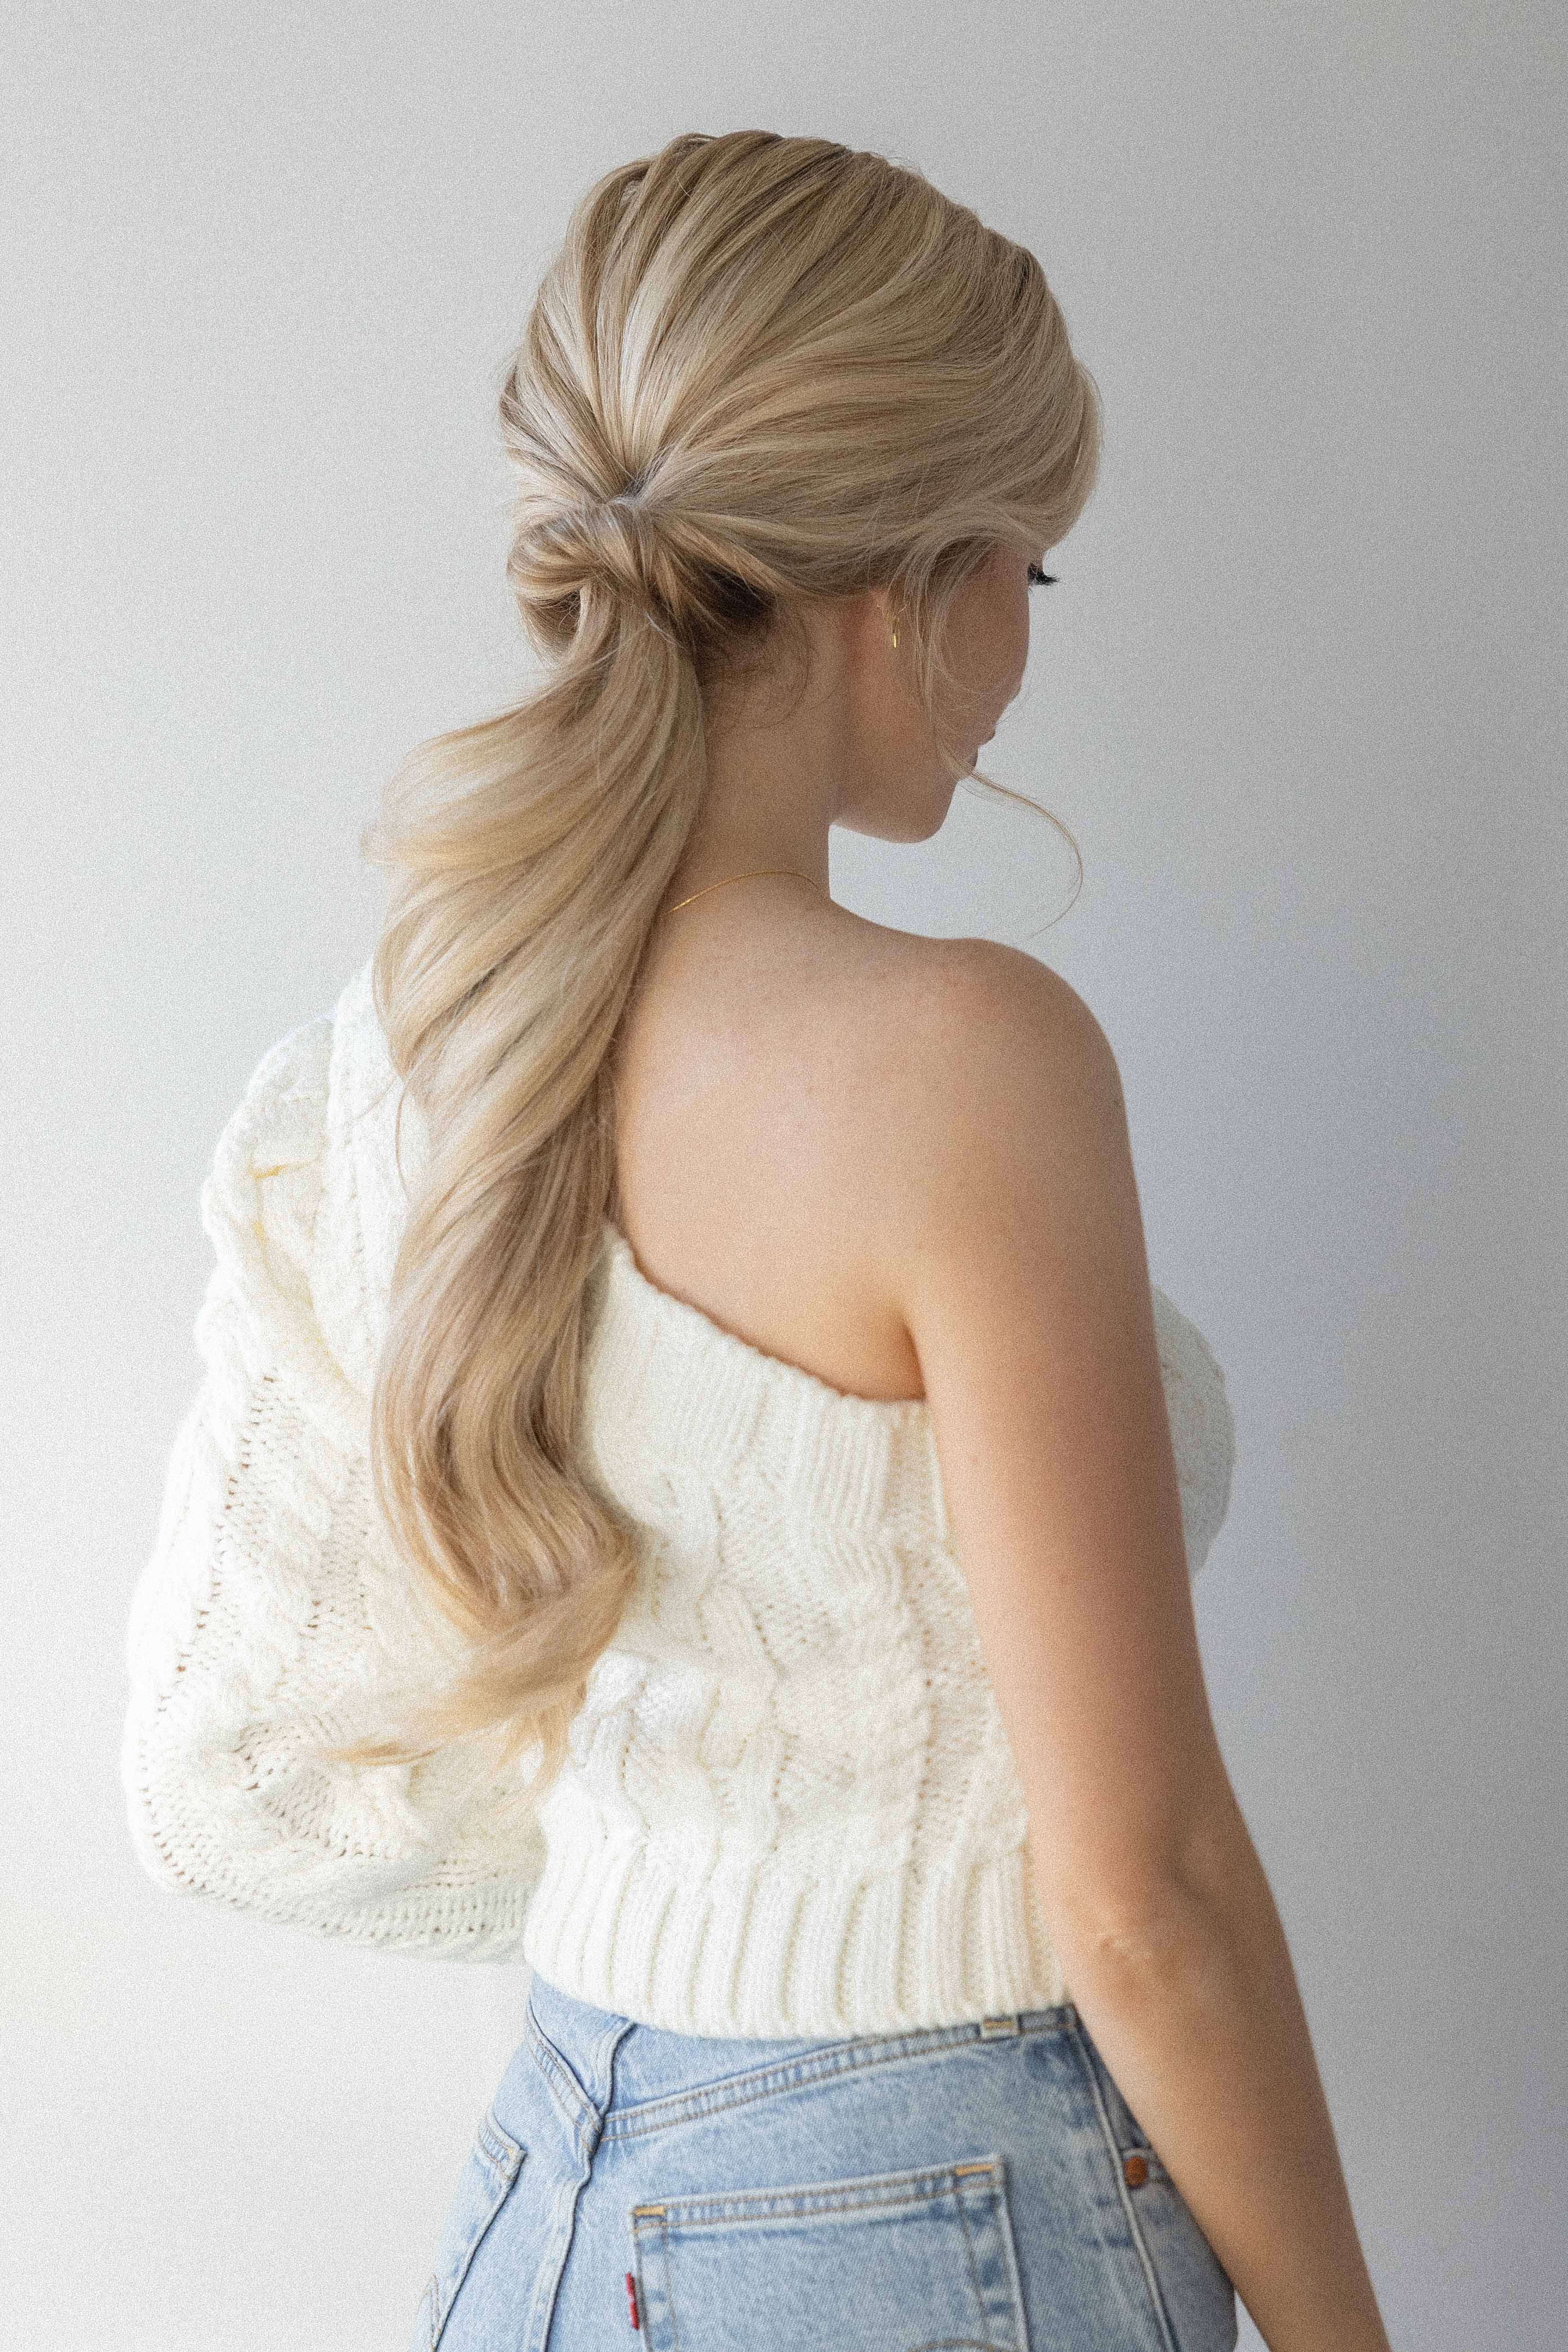 3 MUST TRY PONYTAIL HAIRSTYLES FOR 2020 | Alex Gaboury